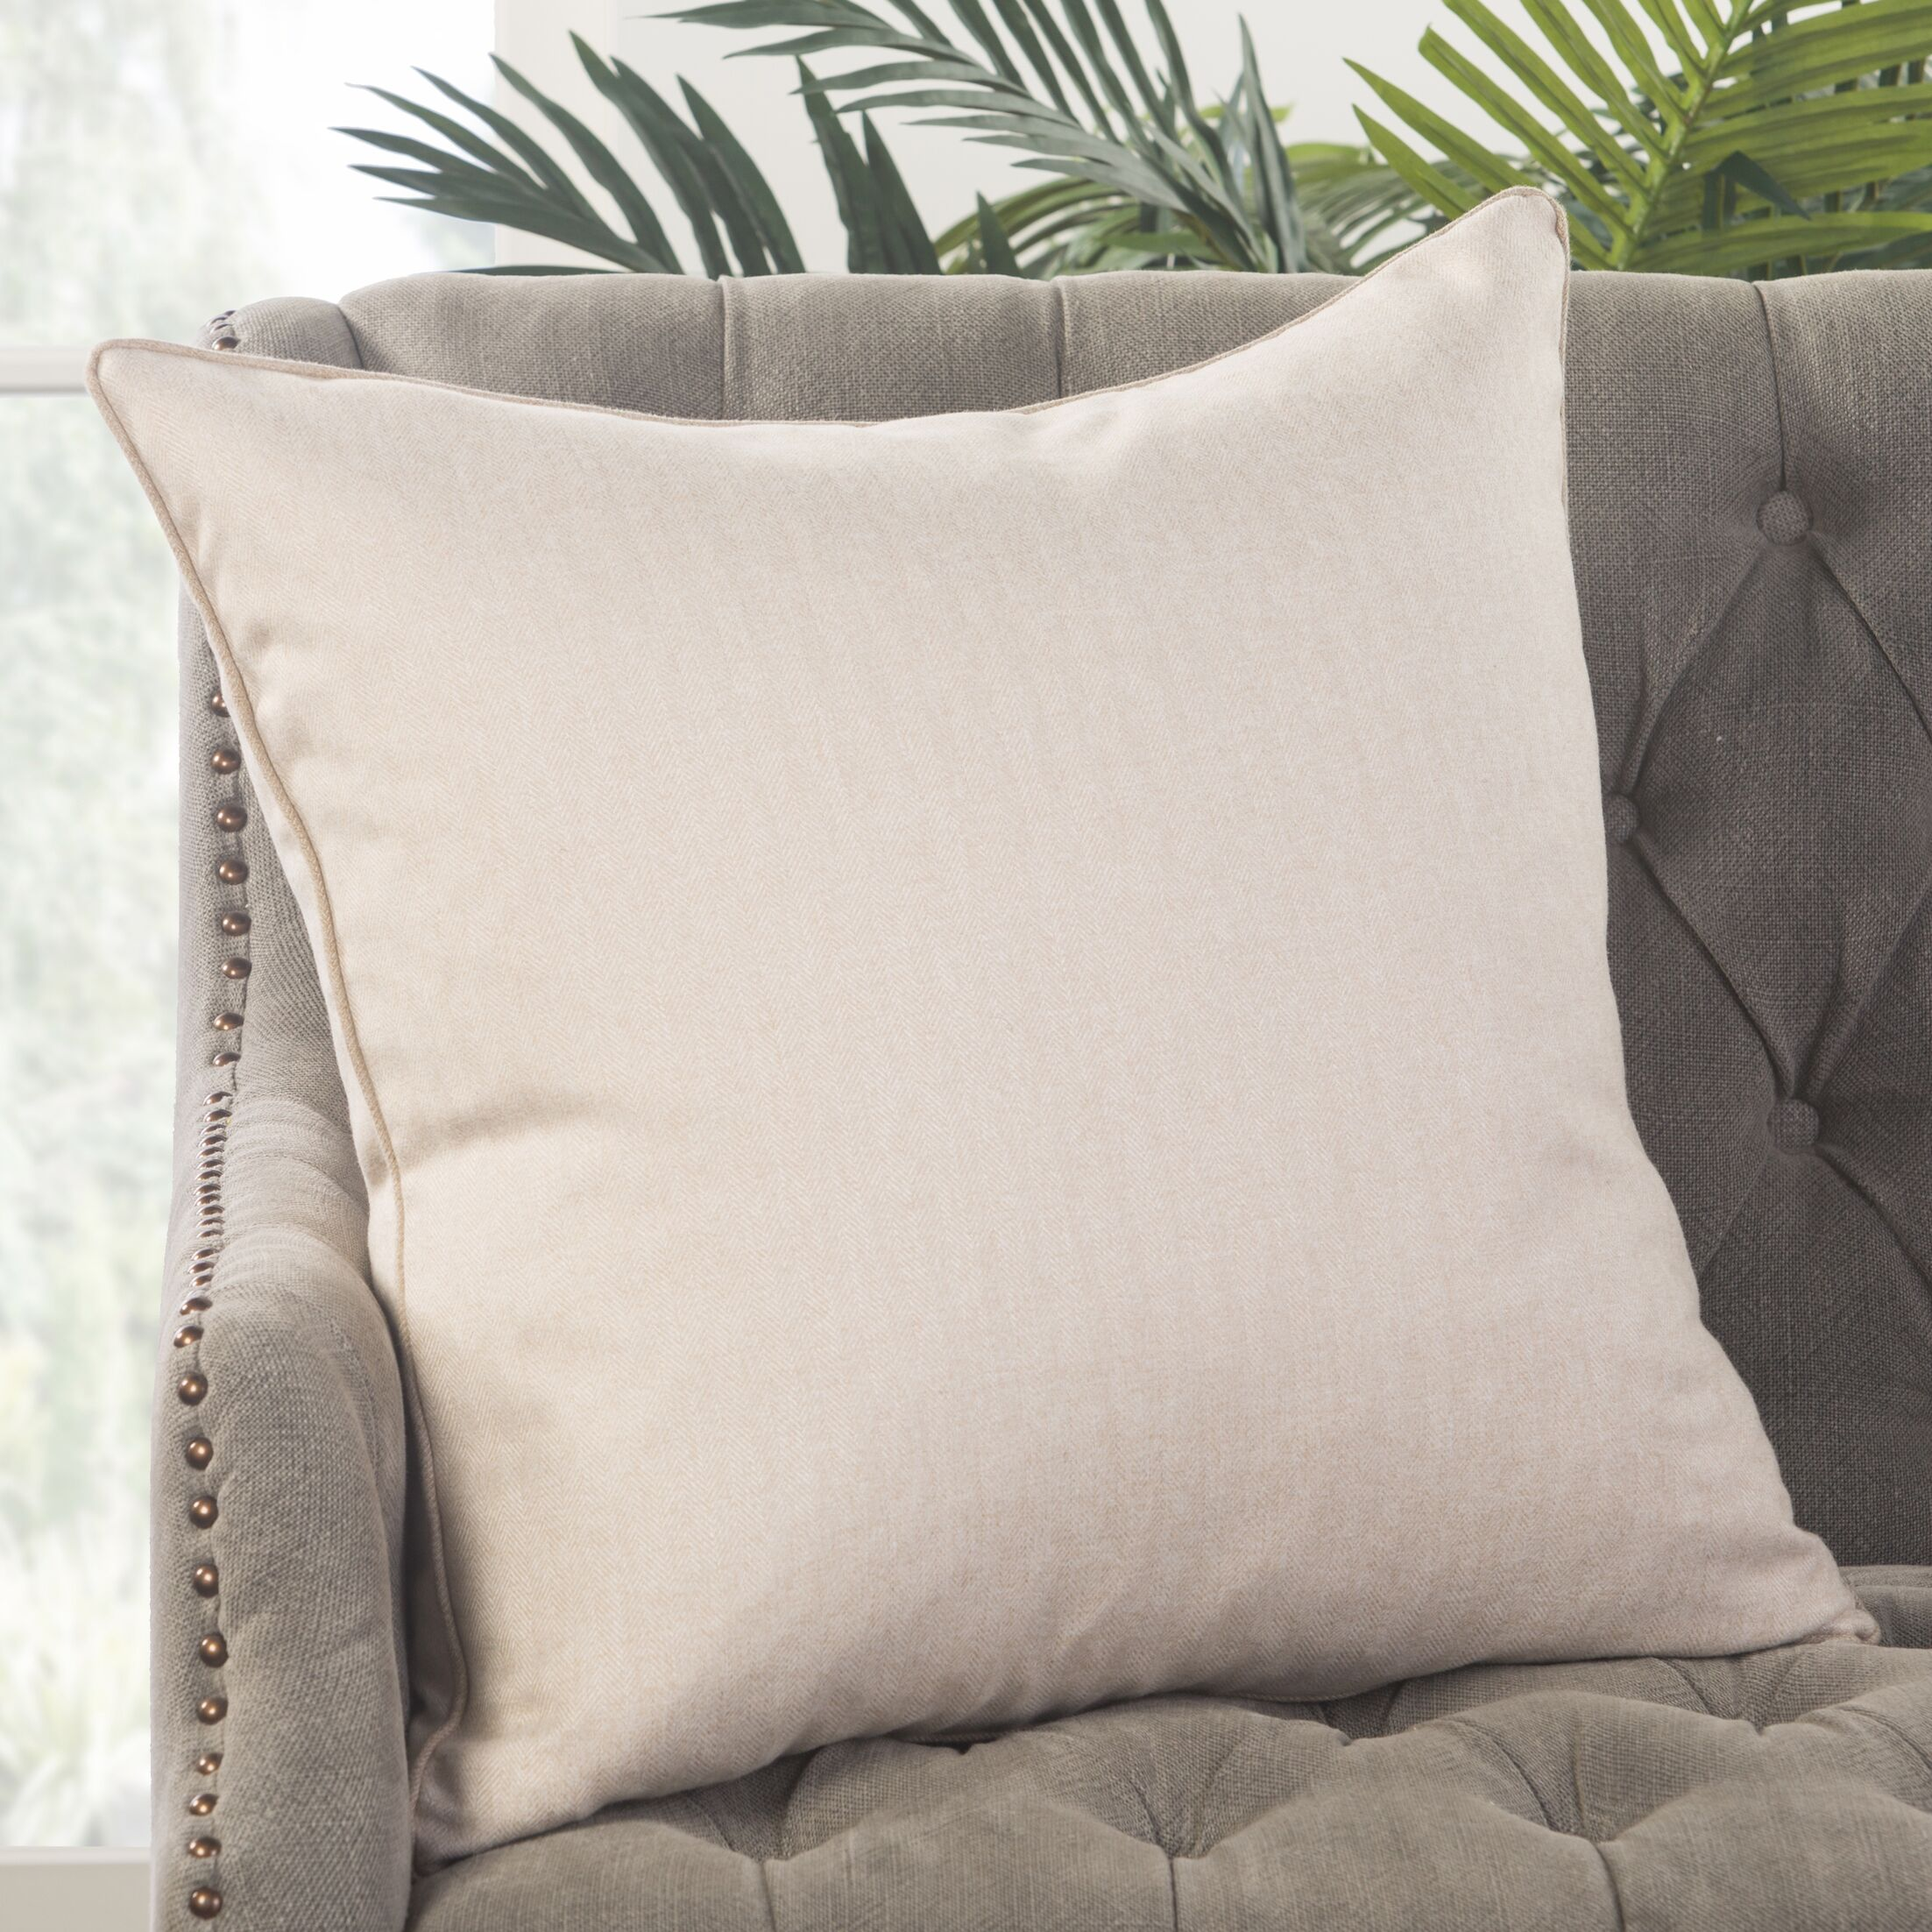 Woods Hole Throw Pillow Fill Material: Down